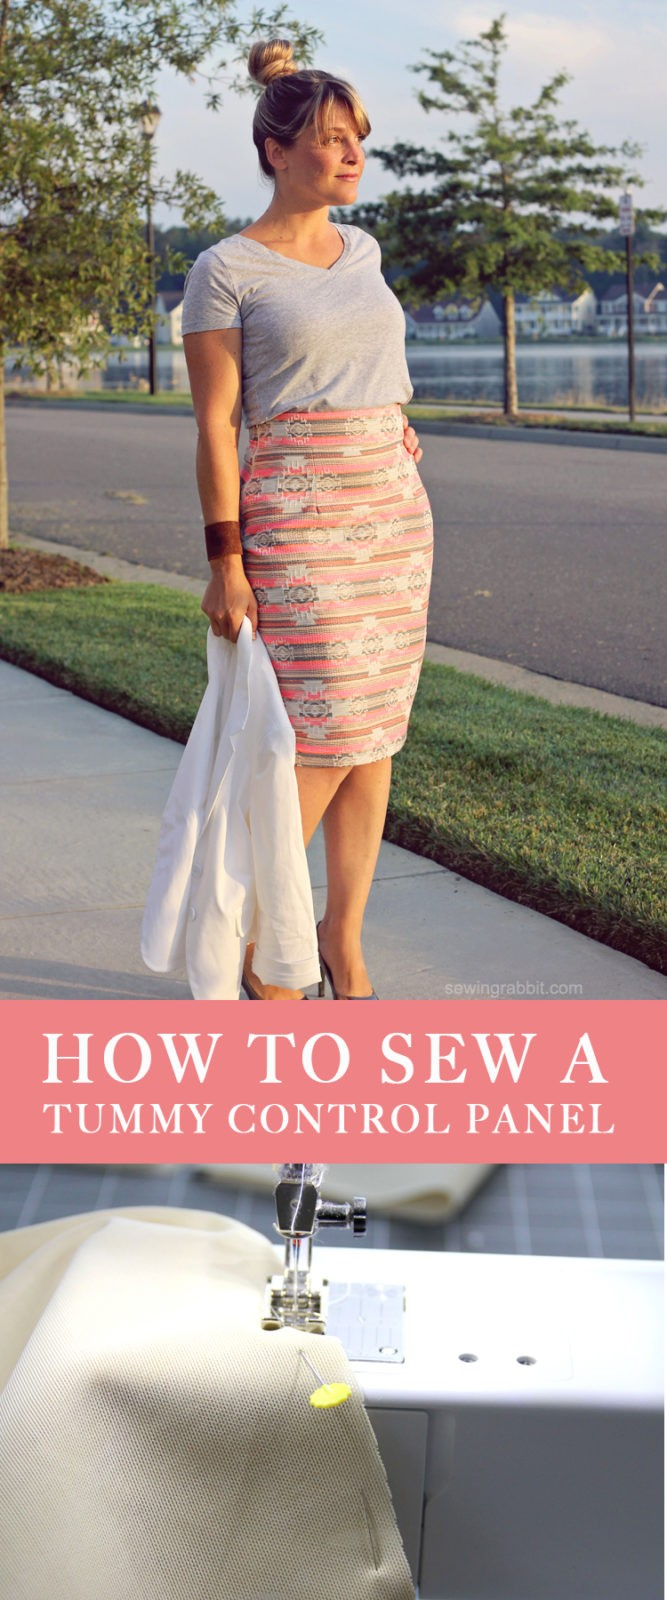 how to sew a tummy control panel